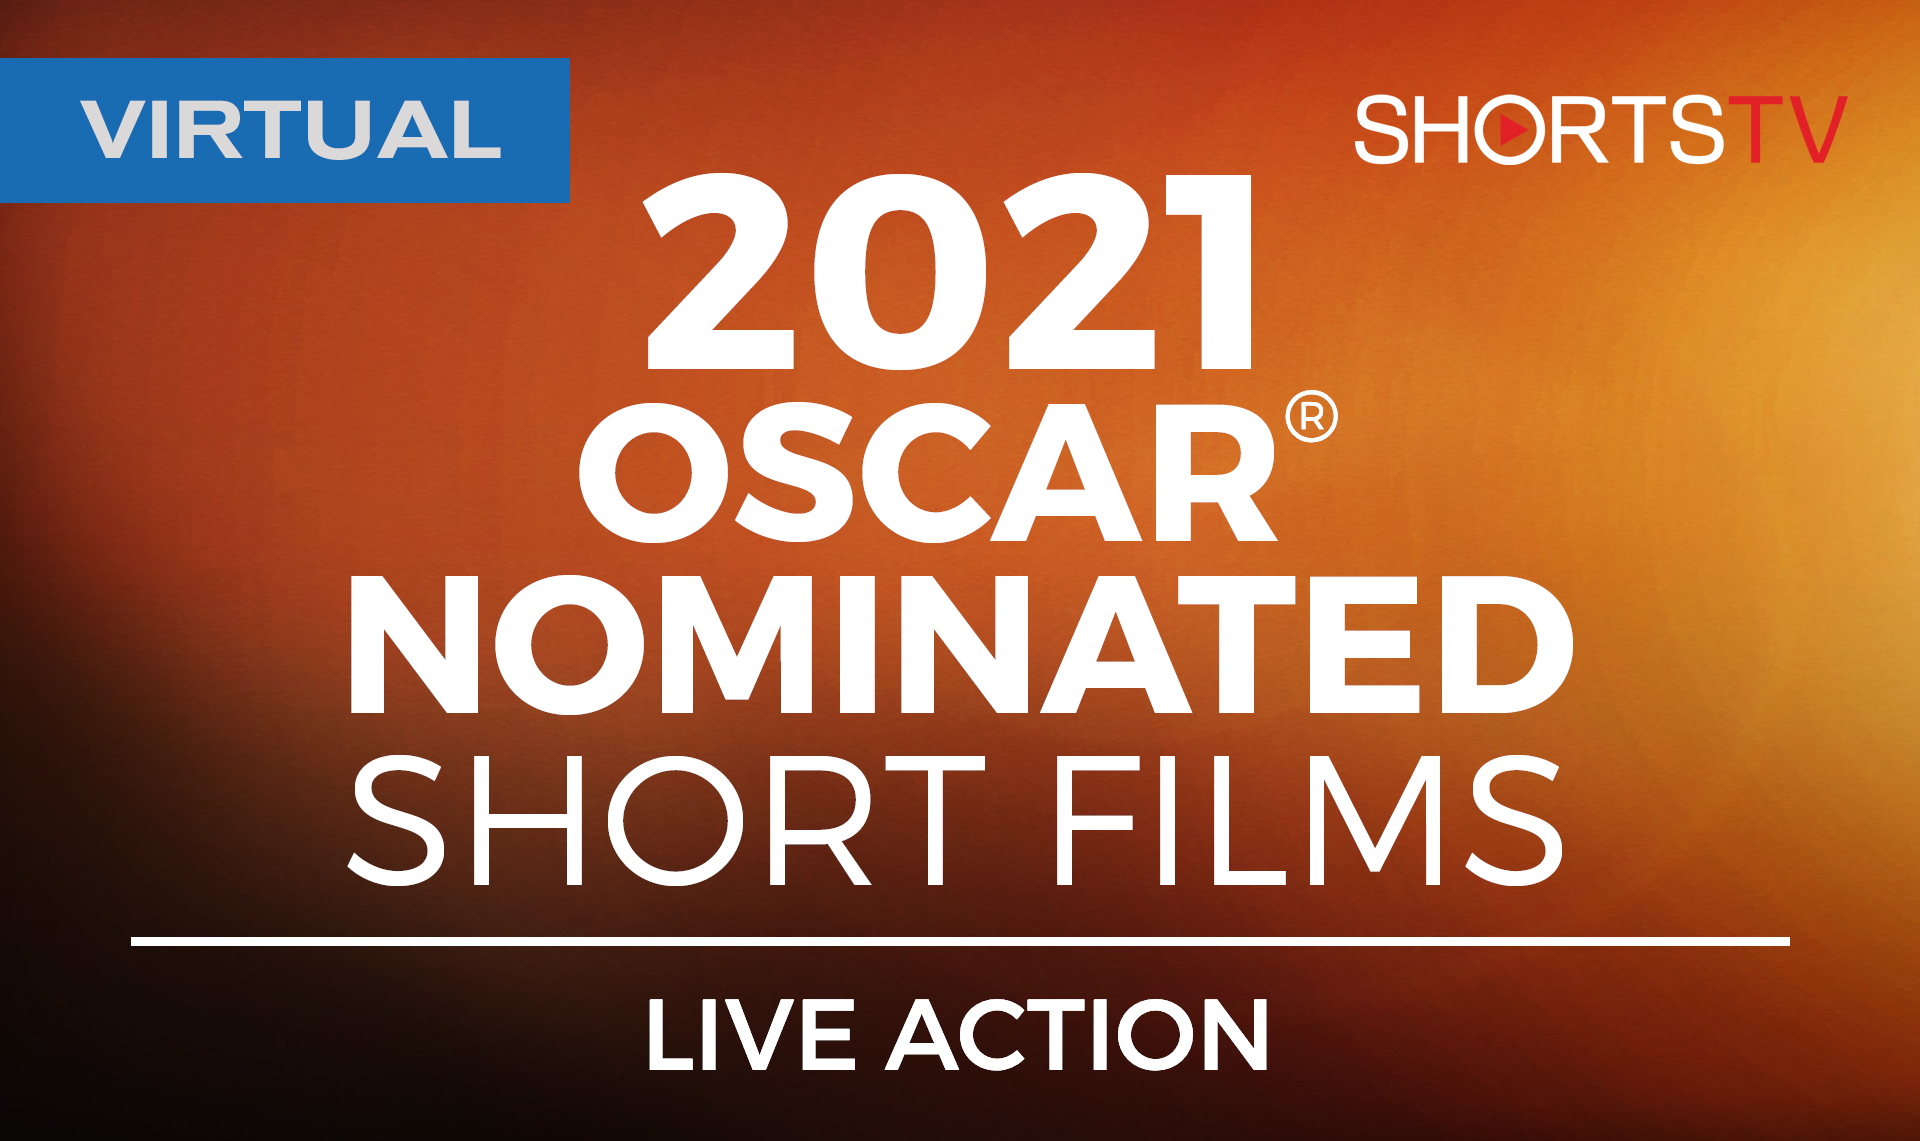 Virtual: 2021 Oscar Nominated Short Films: Live Action